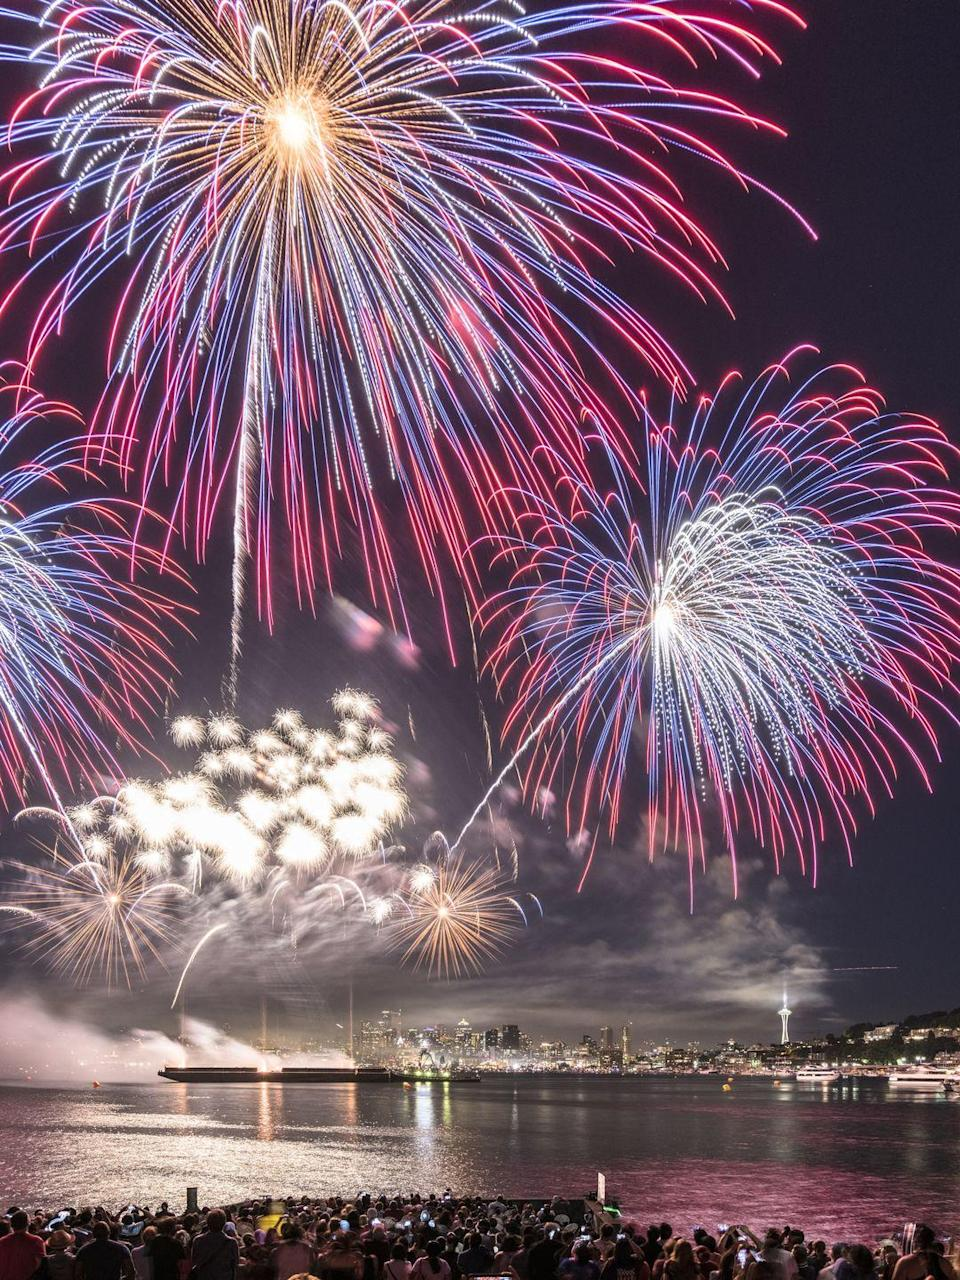 """<p>Of course, you might still be able to enjoy some fireworks safely from your home this year — in which case, don't forget to sit back and enjoy (and practice good <a href=""""https://www.goodhousekeeping.com/holidays/a24586/fireworks-sparkler-safety/"""" rel=""""nofollow noopener"""" target=""""_blank"""" data-ylk=""""slk:fireworks safety"""" class=""""link rapid-noclick-resp"""">fireworks safety</a>)!<br></p><p> <a class=""""link rapid-noclick-resp"""" href=""""https://www.amazon.com/Outdoor-Water-Resistant-Waterproof-Sandproof-SC-CM-01/dp/B01FI1QXS8/?tag=syn-yahoo-20&ascsubtag=%5Bartid%7C10055.g.21749867%5Bsrc%7Cyahoo-us"""" rel=""""nofollow noopener"""" target=""""_blank"""" data-ylk=""""slk:SHOP OUTDOOR BLANKETS"""">SHOP OUTDOOR BLANKETS</a> </p><p><strong>RELATED: </strong><a href=""""https://www.goodhousekeeping.com/holidays/g3681/holiday-weekend-safety-dangers/"""" rel=""""nofollow noopener"""" target=""""_blank"""" data-ylk=""""slk:Here's Everything You Need to Know to Stay Safe This 4th of July"""" class=""""link rapid-noclick-resp"""">Here's Everything You Need to Know to Stay Safe This 4th of July</a></p>"""